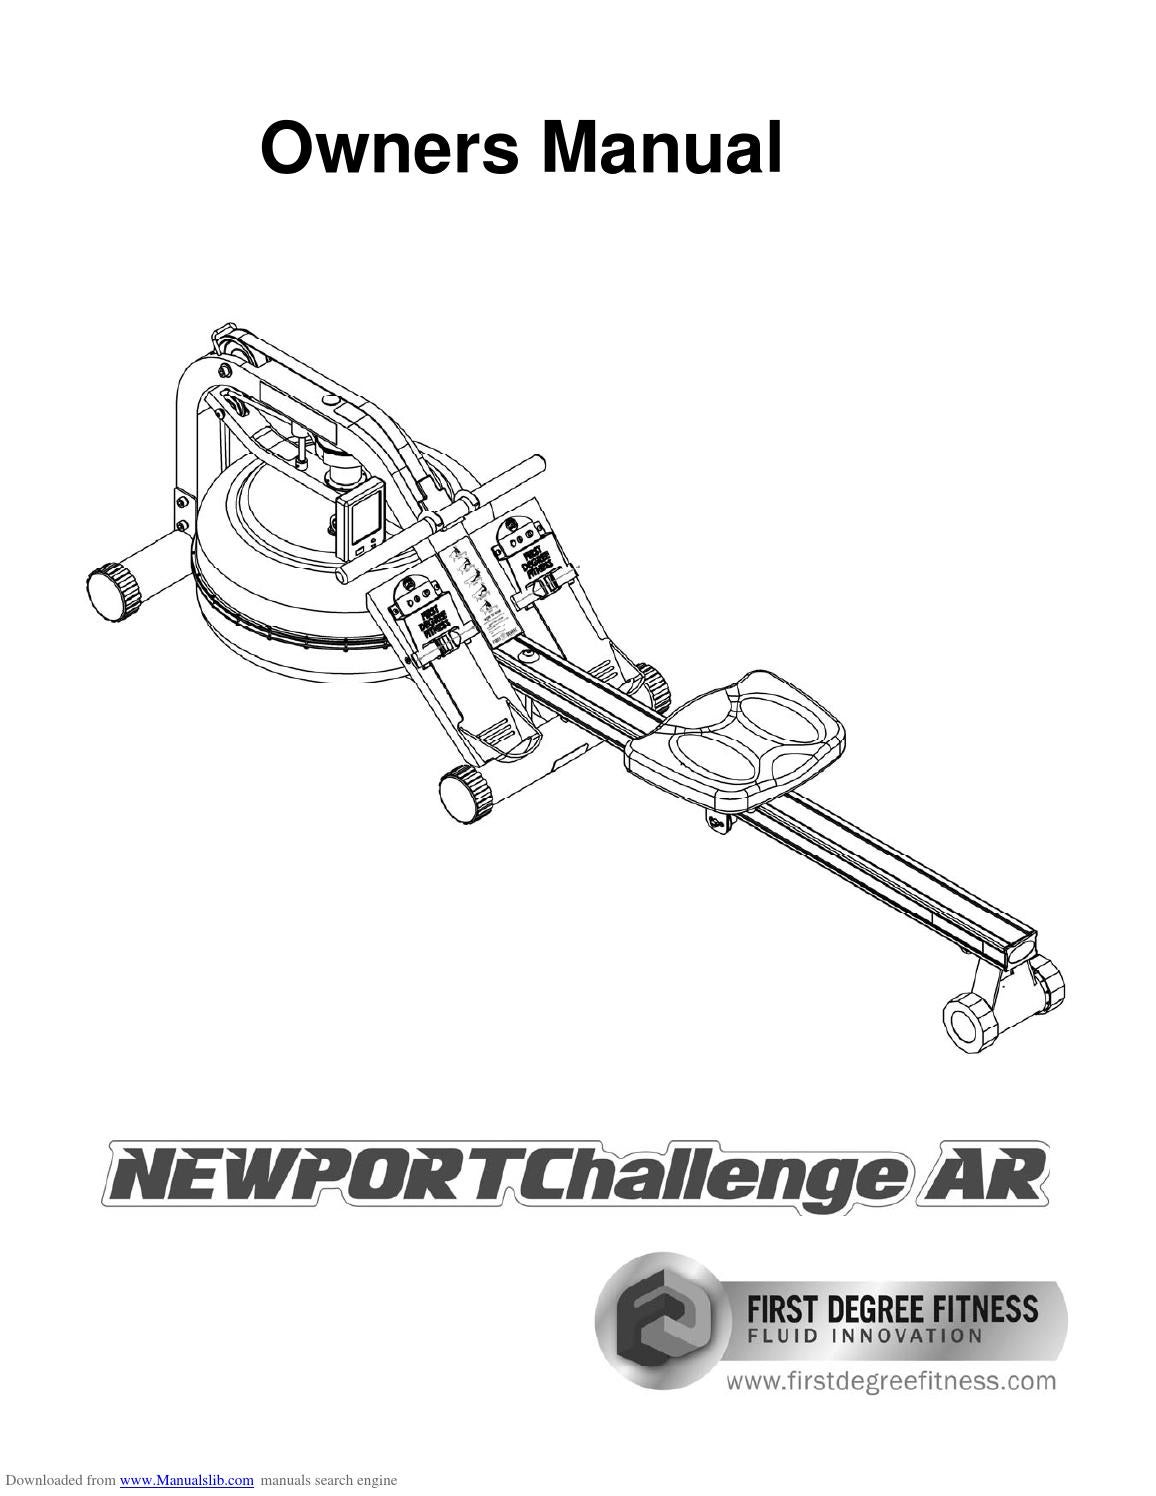 First degree newport challenge rowing machine manual by